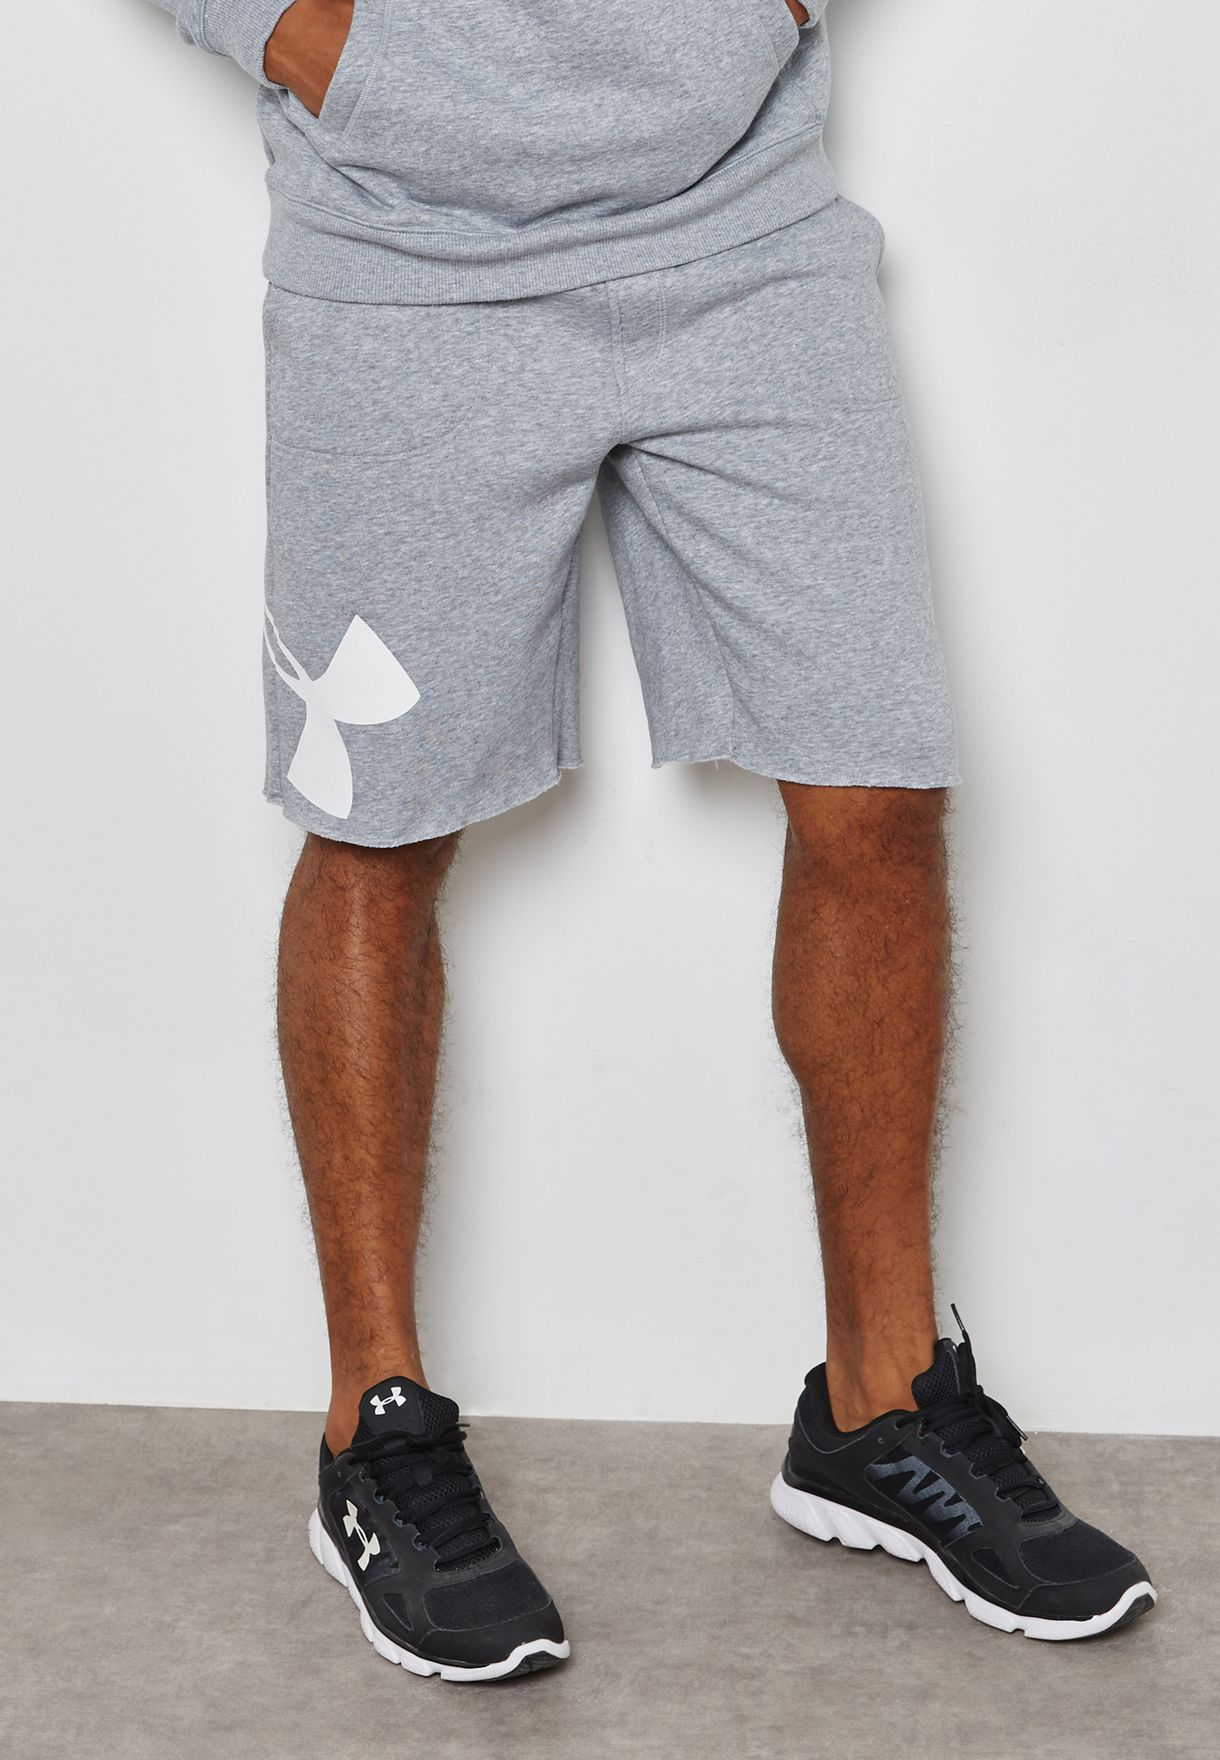 6b2dd543b94 Shop Under Armour grey Rival Exploded Graphic Shorts 1303137-025 for Men in  Kuwait - UN700AT29RKC